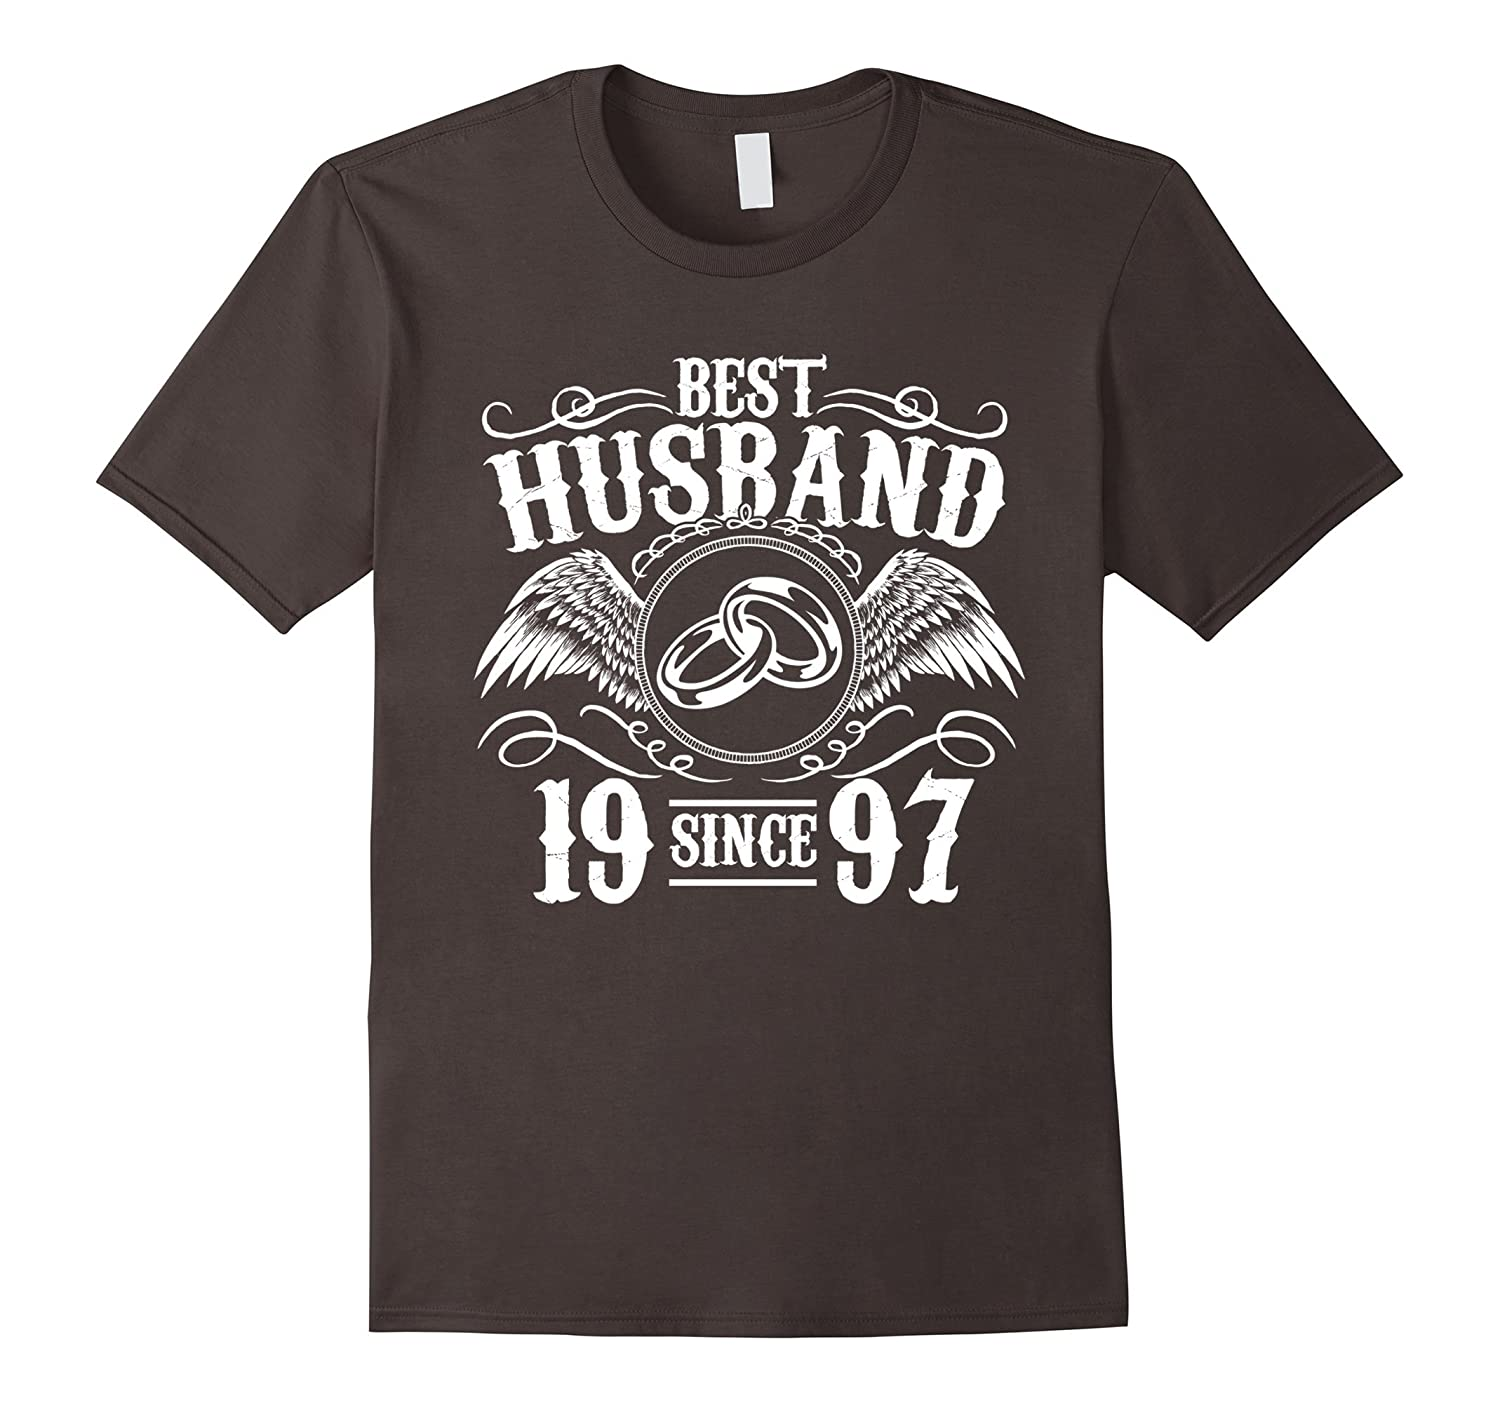 Great Wedding Gift For Husband: Great T-Shirt For Husband. 20th Wedding Anniversary Gift